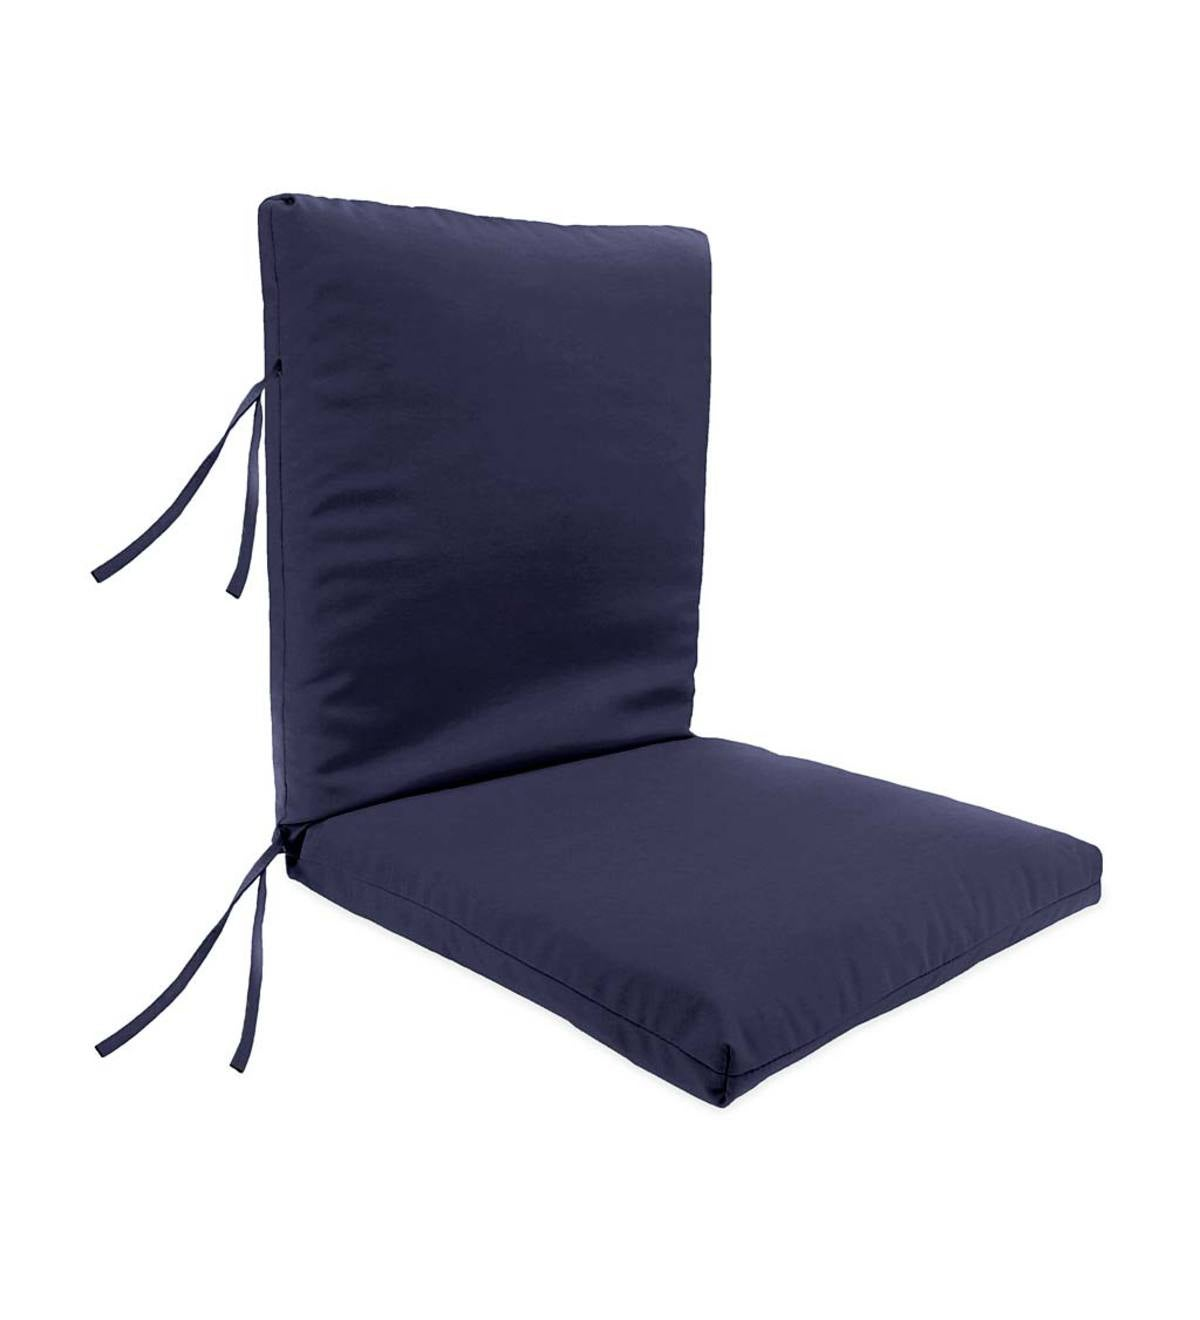 Hinged Outdoor Classic Chair Cushion With Ties - Solid Navy